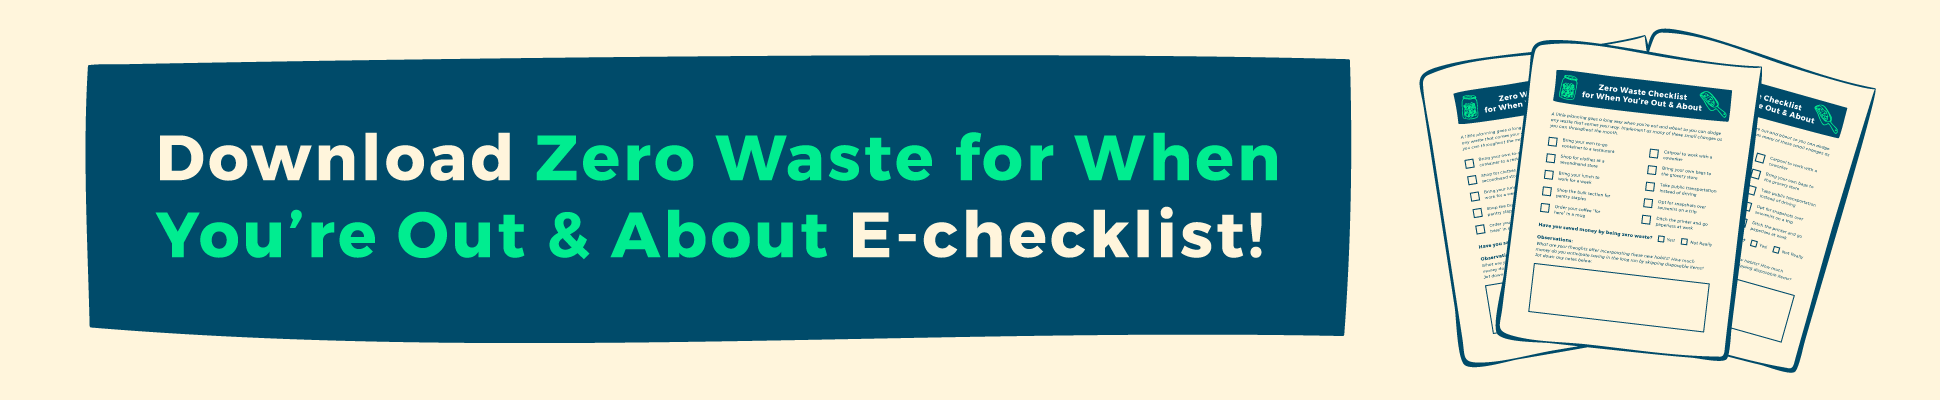 zero-waste-checklist-banner-out-and-about